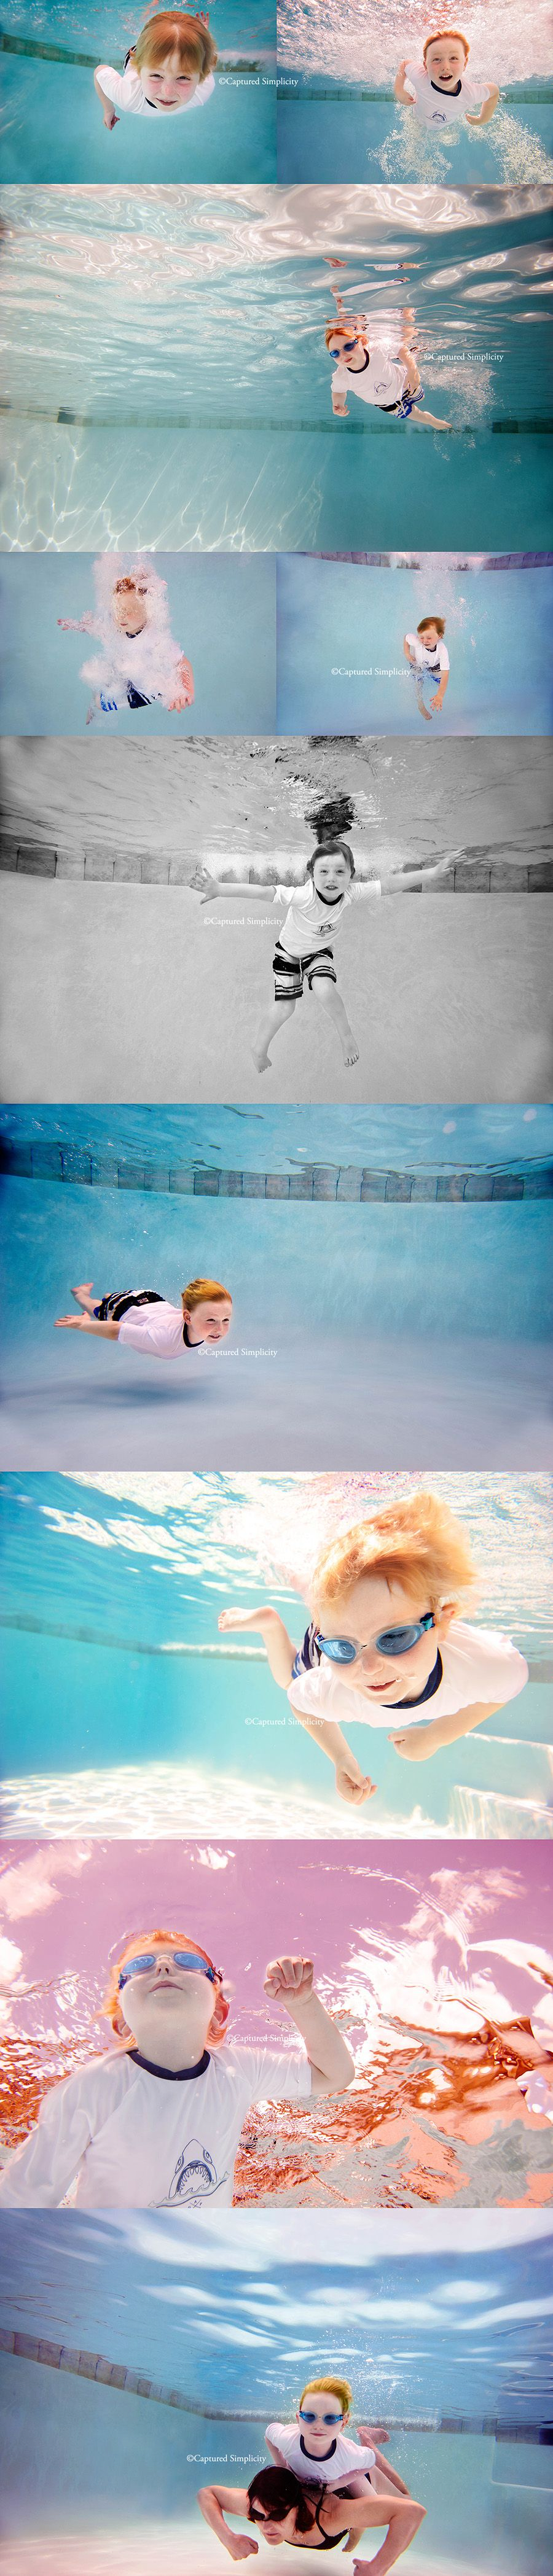 Boy dies at tropical islands swimming pool the local - Swimming Pool Photos Child Underwater Photography Photos In The Pool Kid S Photos Under The Water Swimming